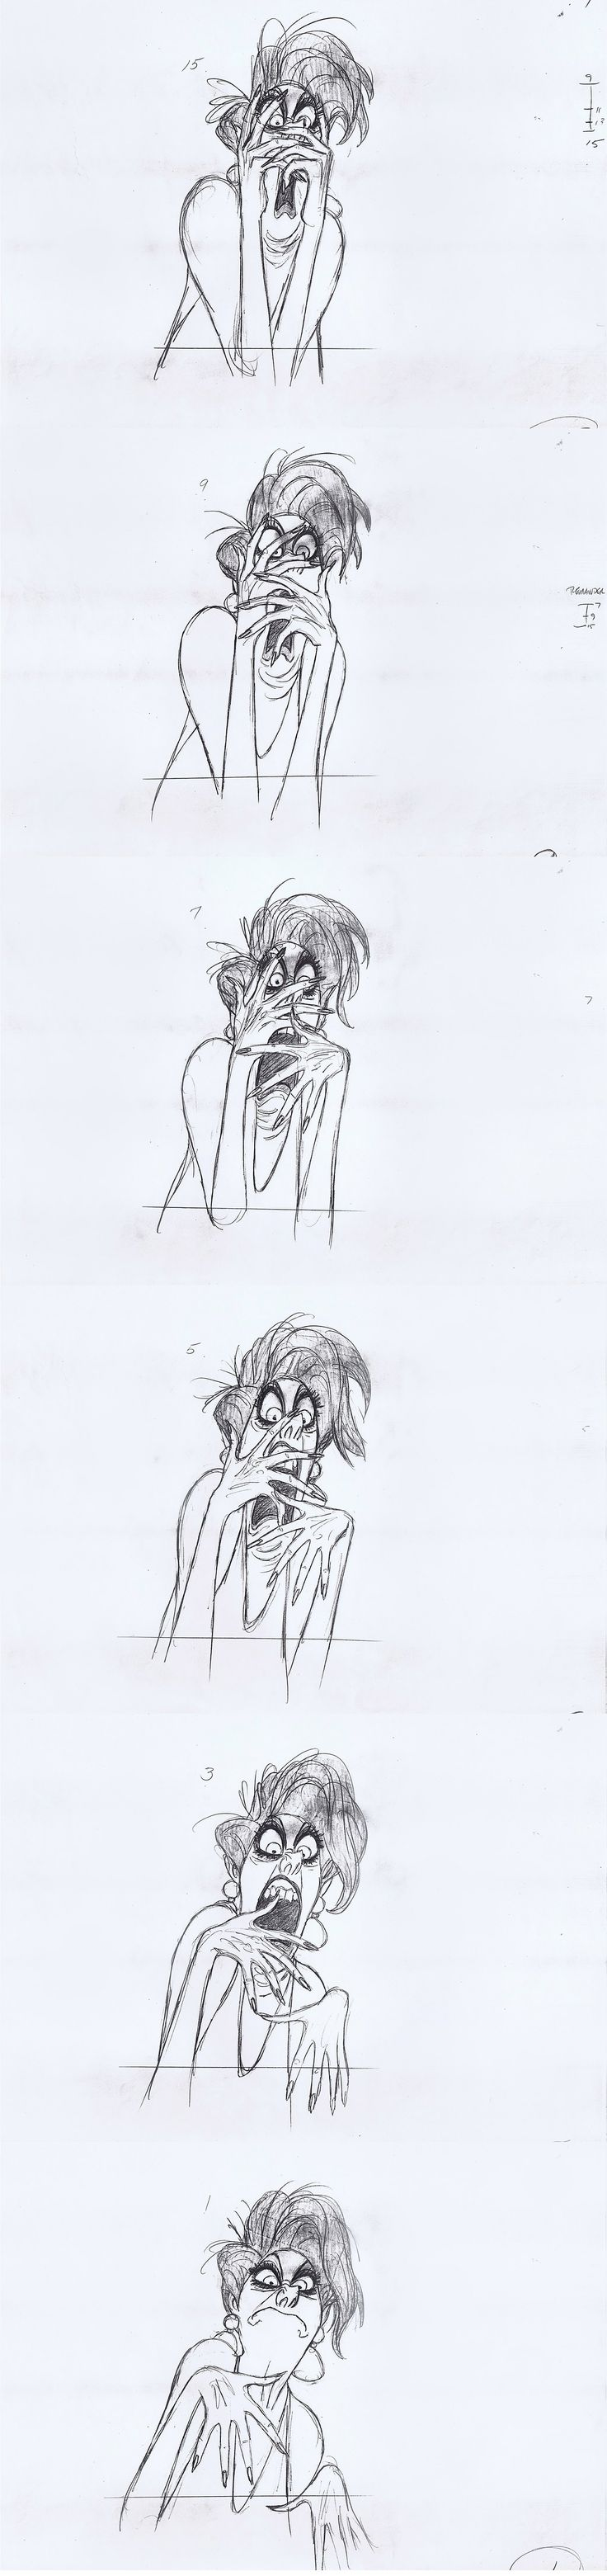 Milt Kahl - Medusa Rough Animation - The Rescuers ✤ || CHARACTER DESIGN REFERENCES | Find more at https://www.facebook.com/CharacterDesignReferences if you're looking for: #line #art #character #design #model #sheet #illustration #expressions #best #concept #animation #drawing #archive #library #reference #anatomy #traditional #draw #development #artist #pose #settei #gestures #how #to #tutorial #conceptart #modelsheet #cartoon #female #lady #woman #girl || ✤